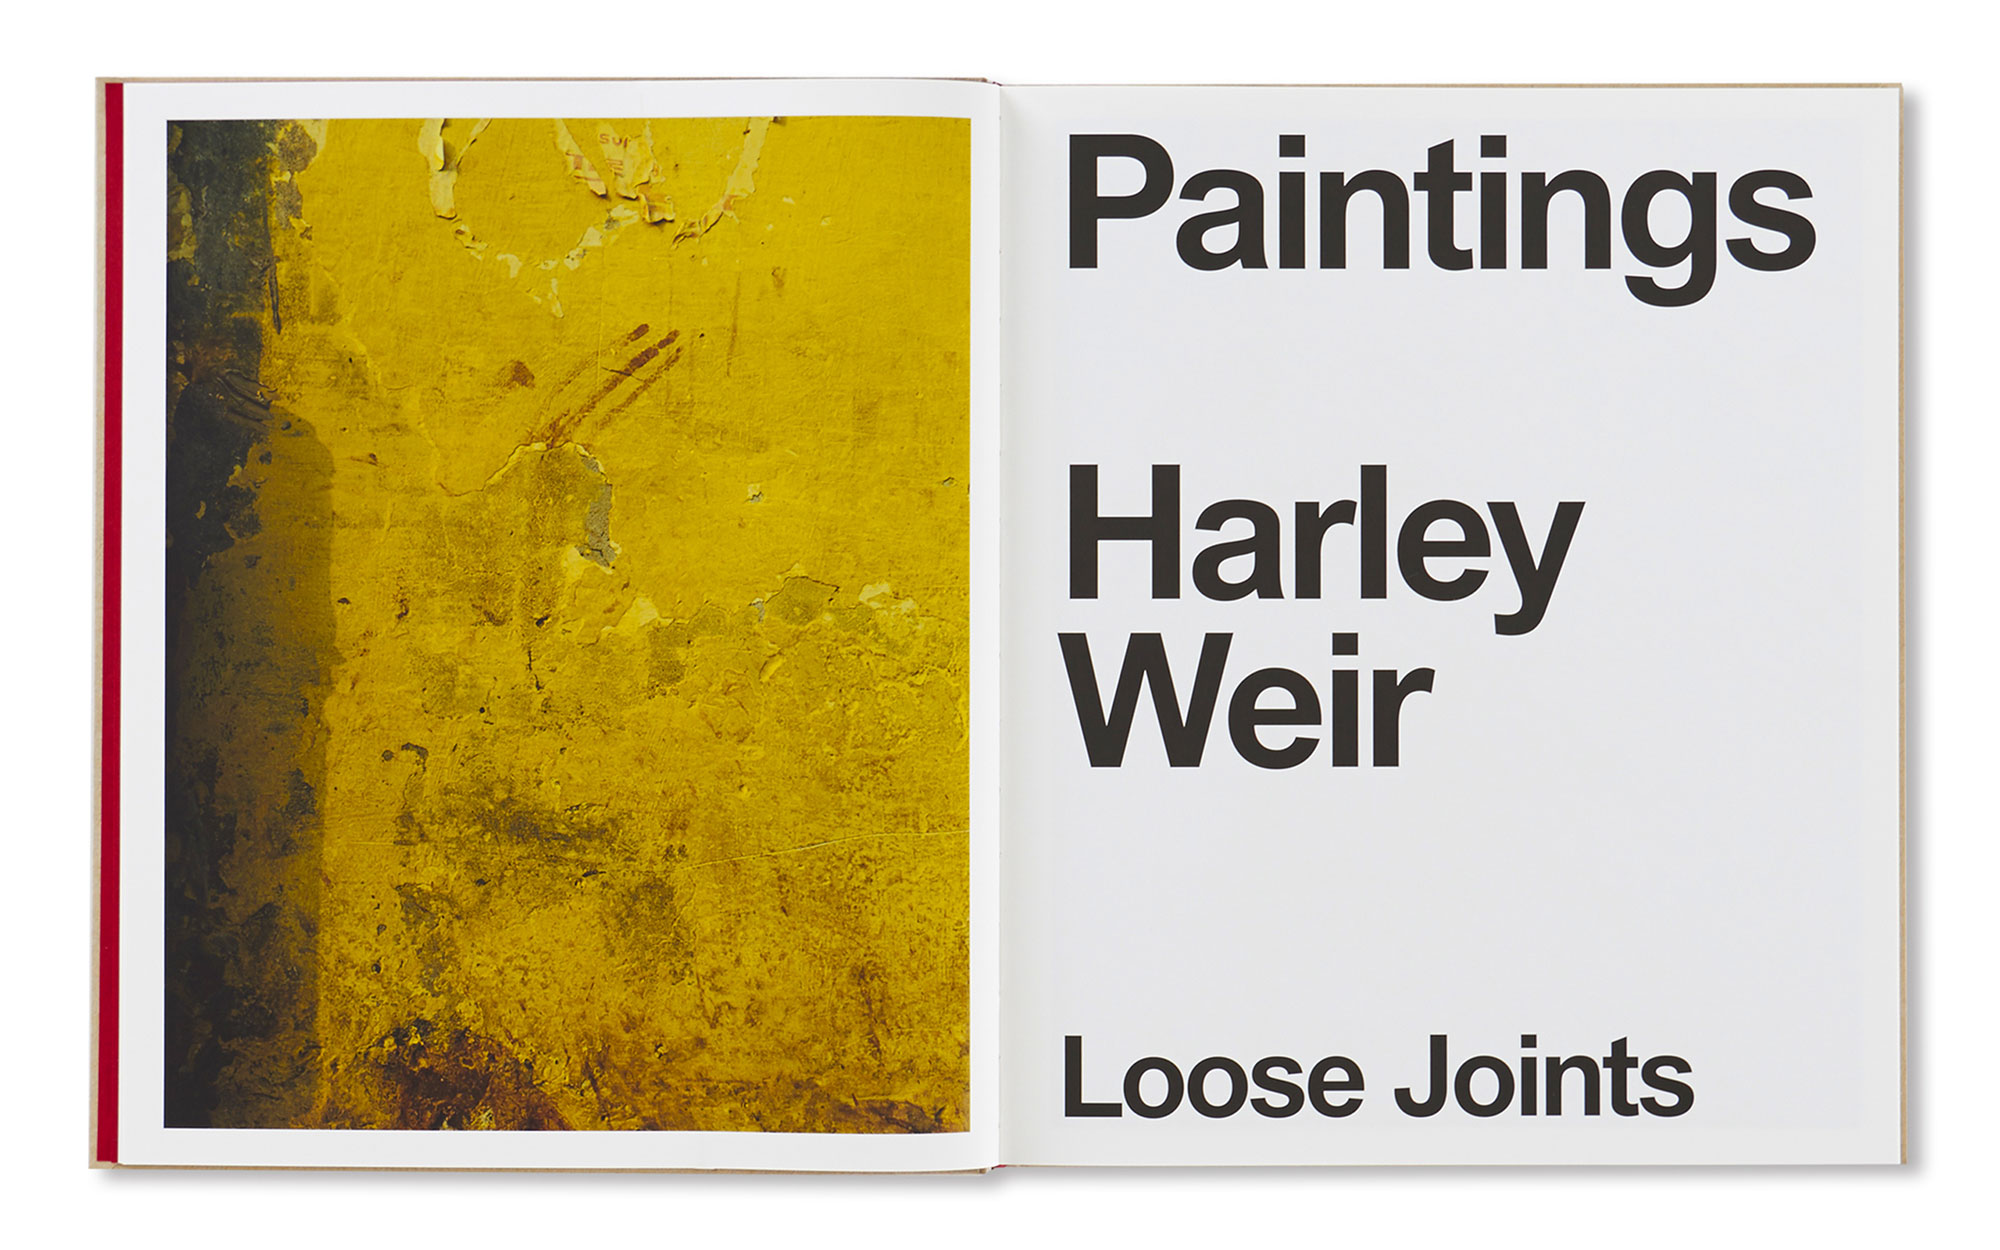 『PAINTINGS』by Harley Weir ¥7,000